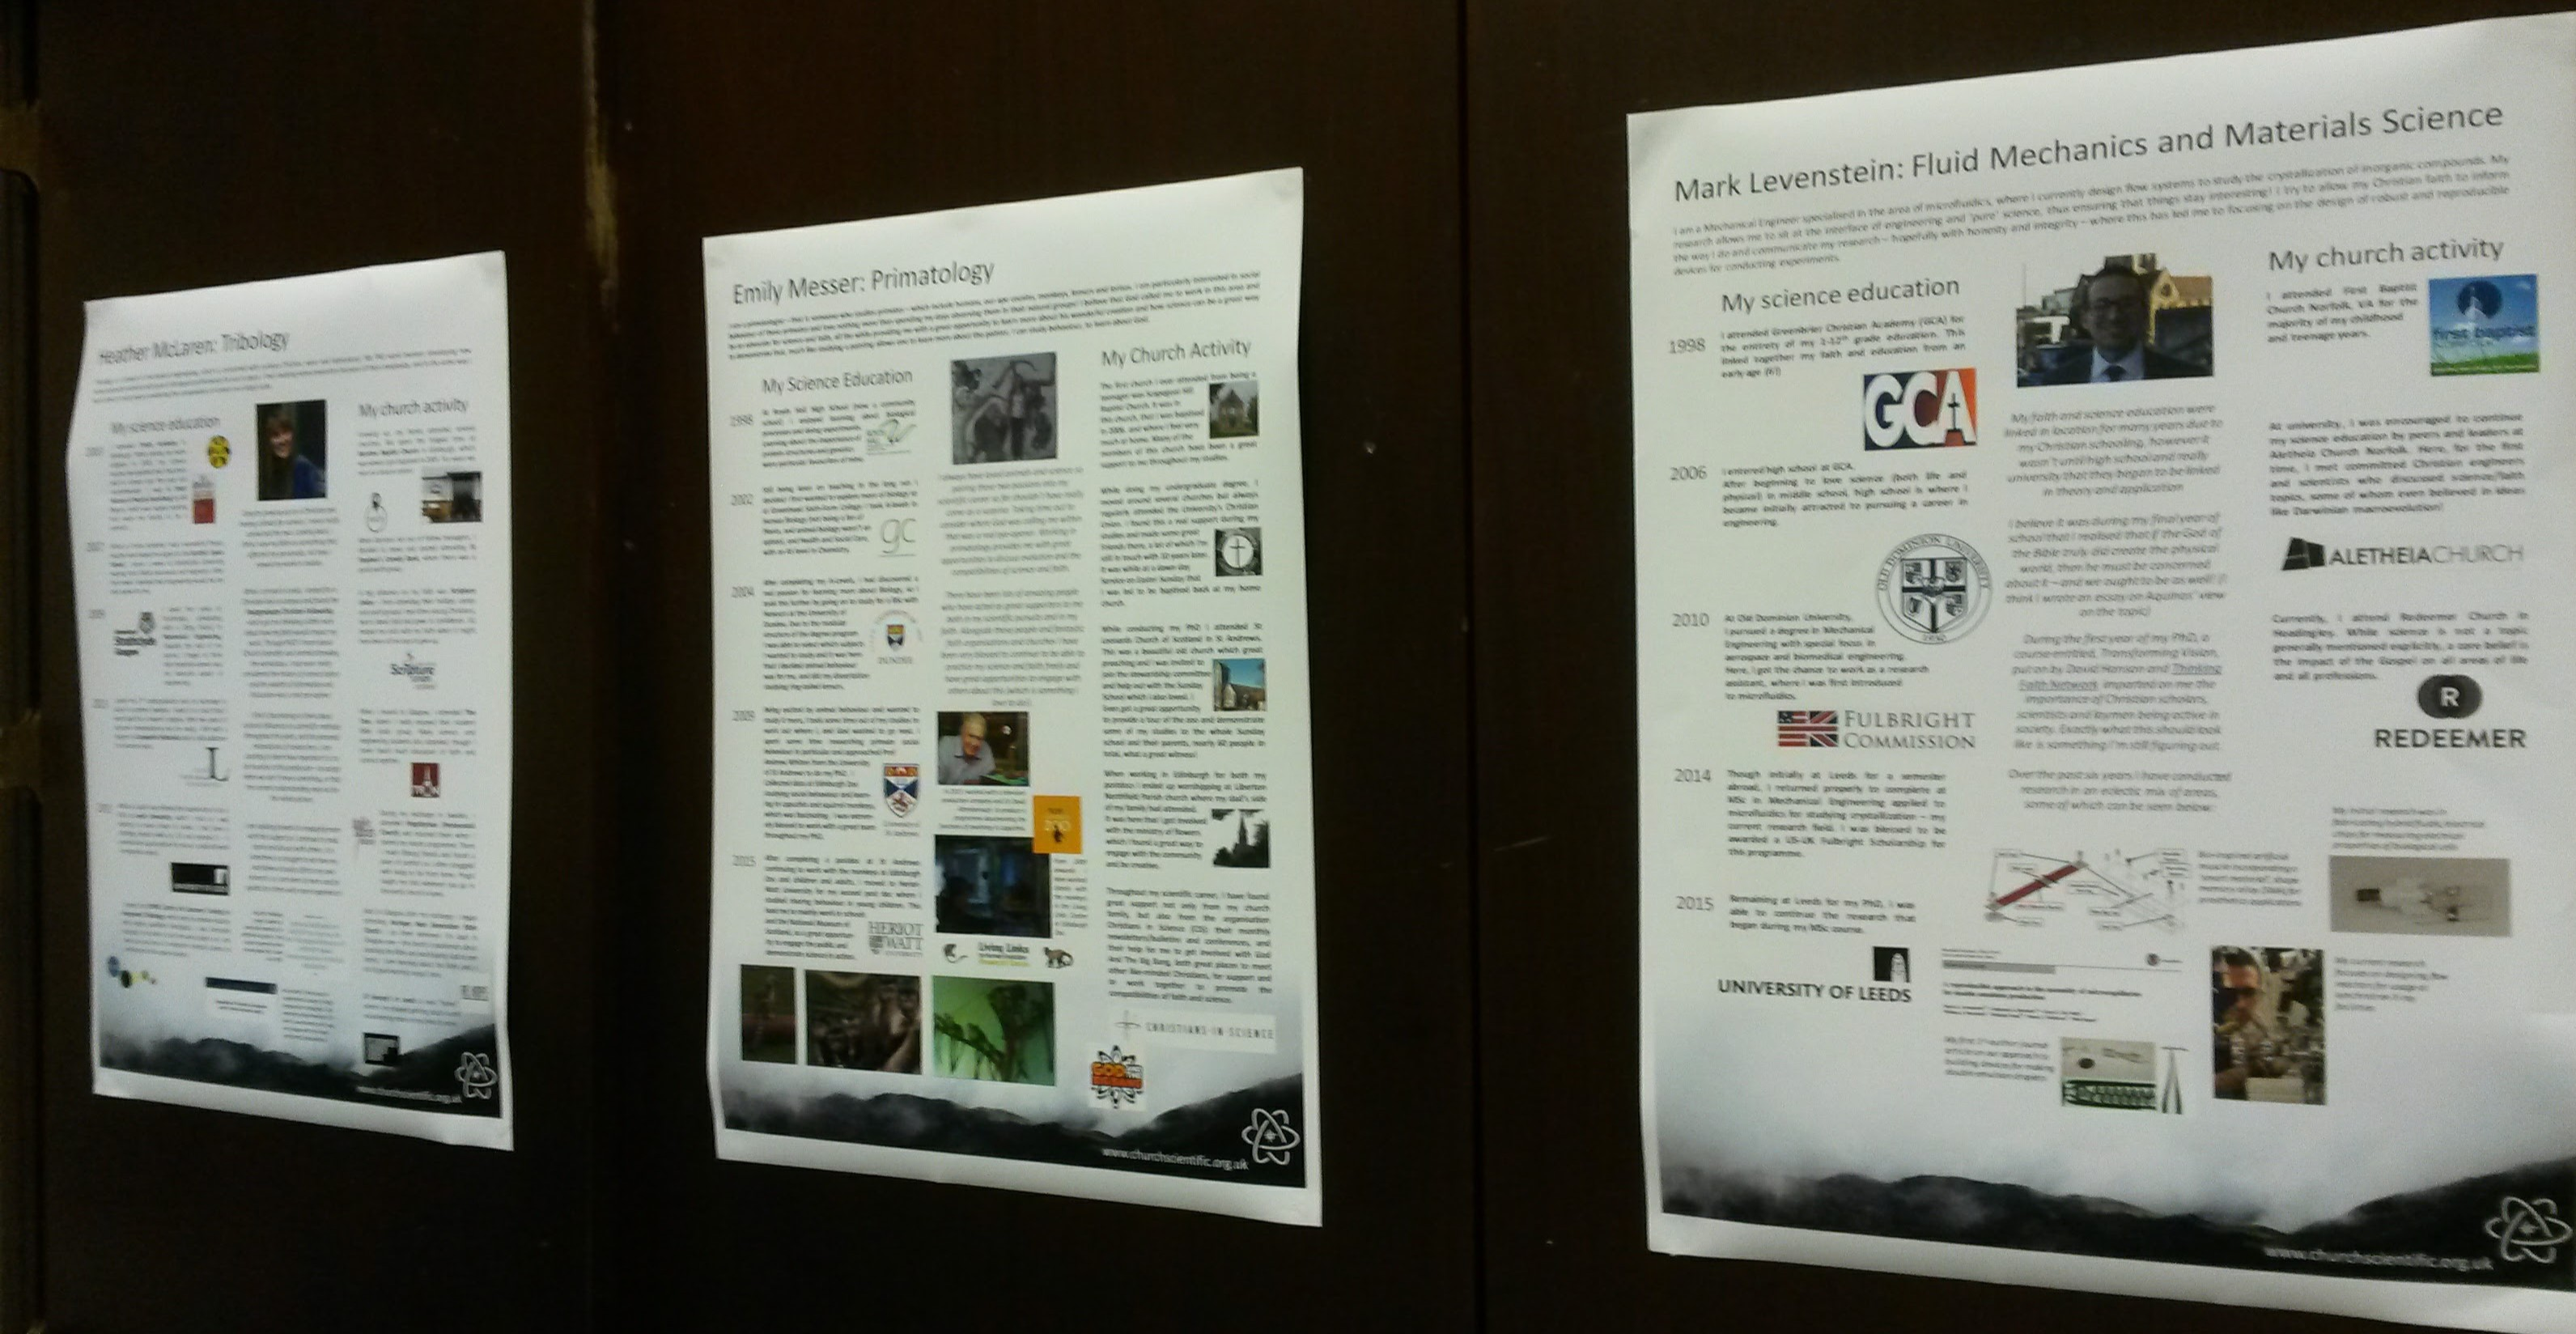 POSTERS: careers of Christian scientists